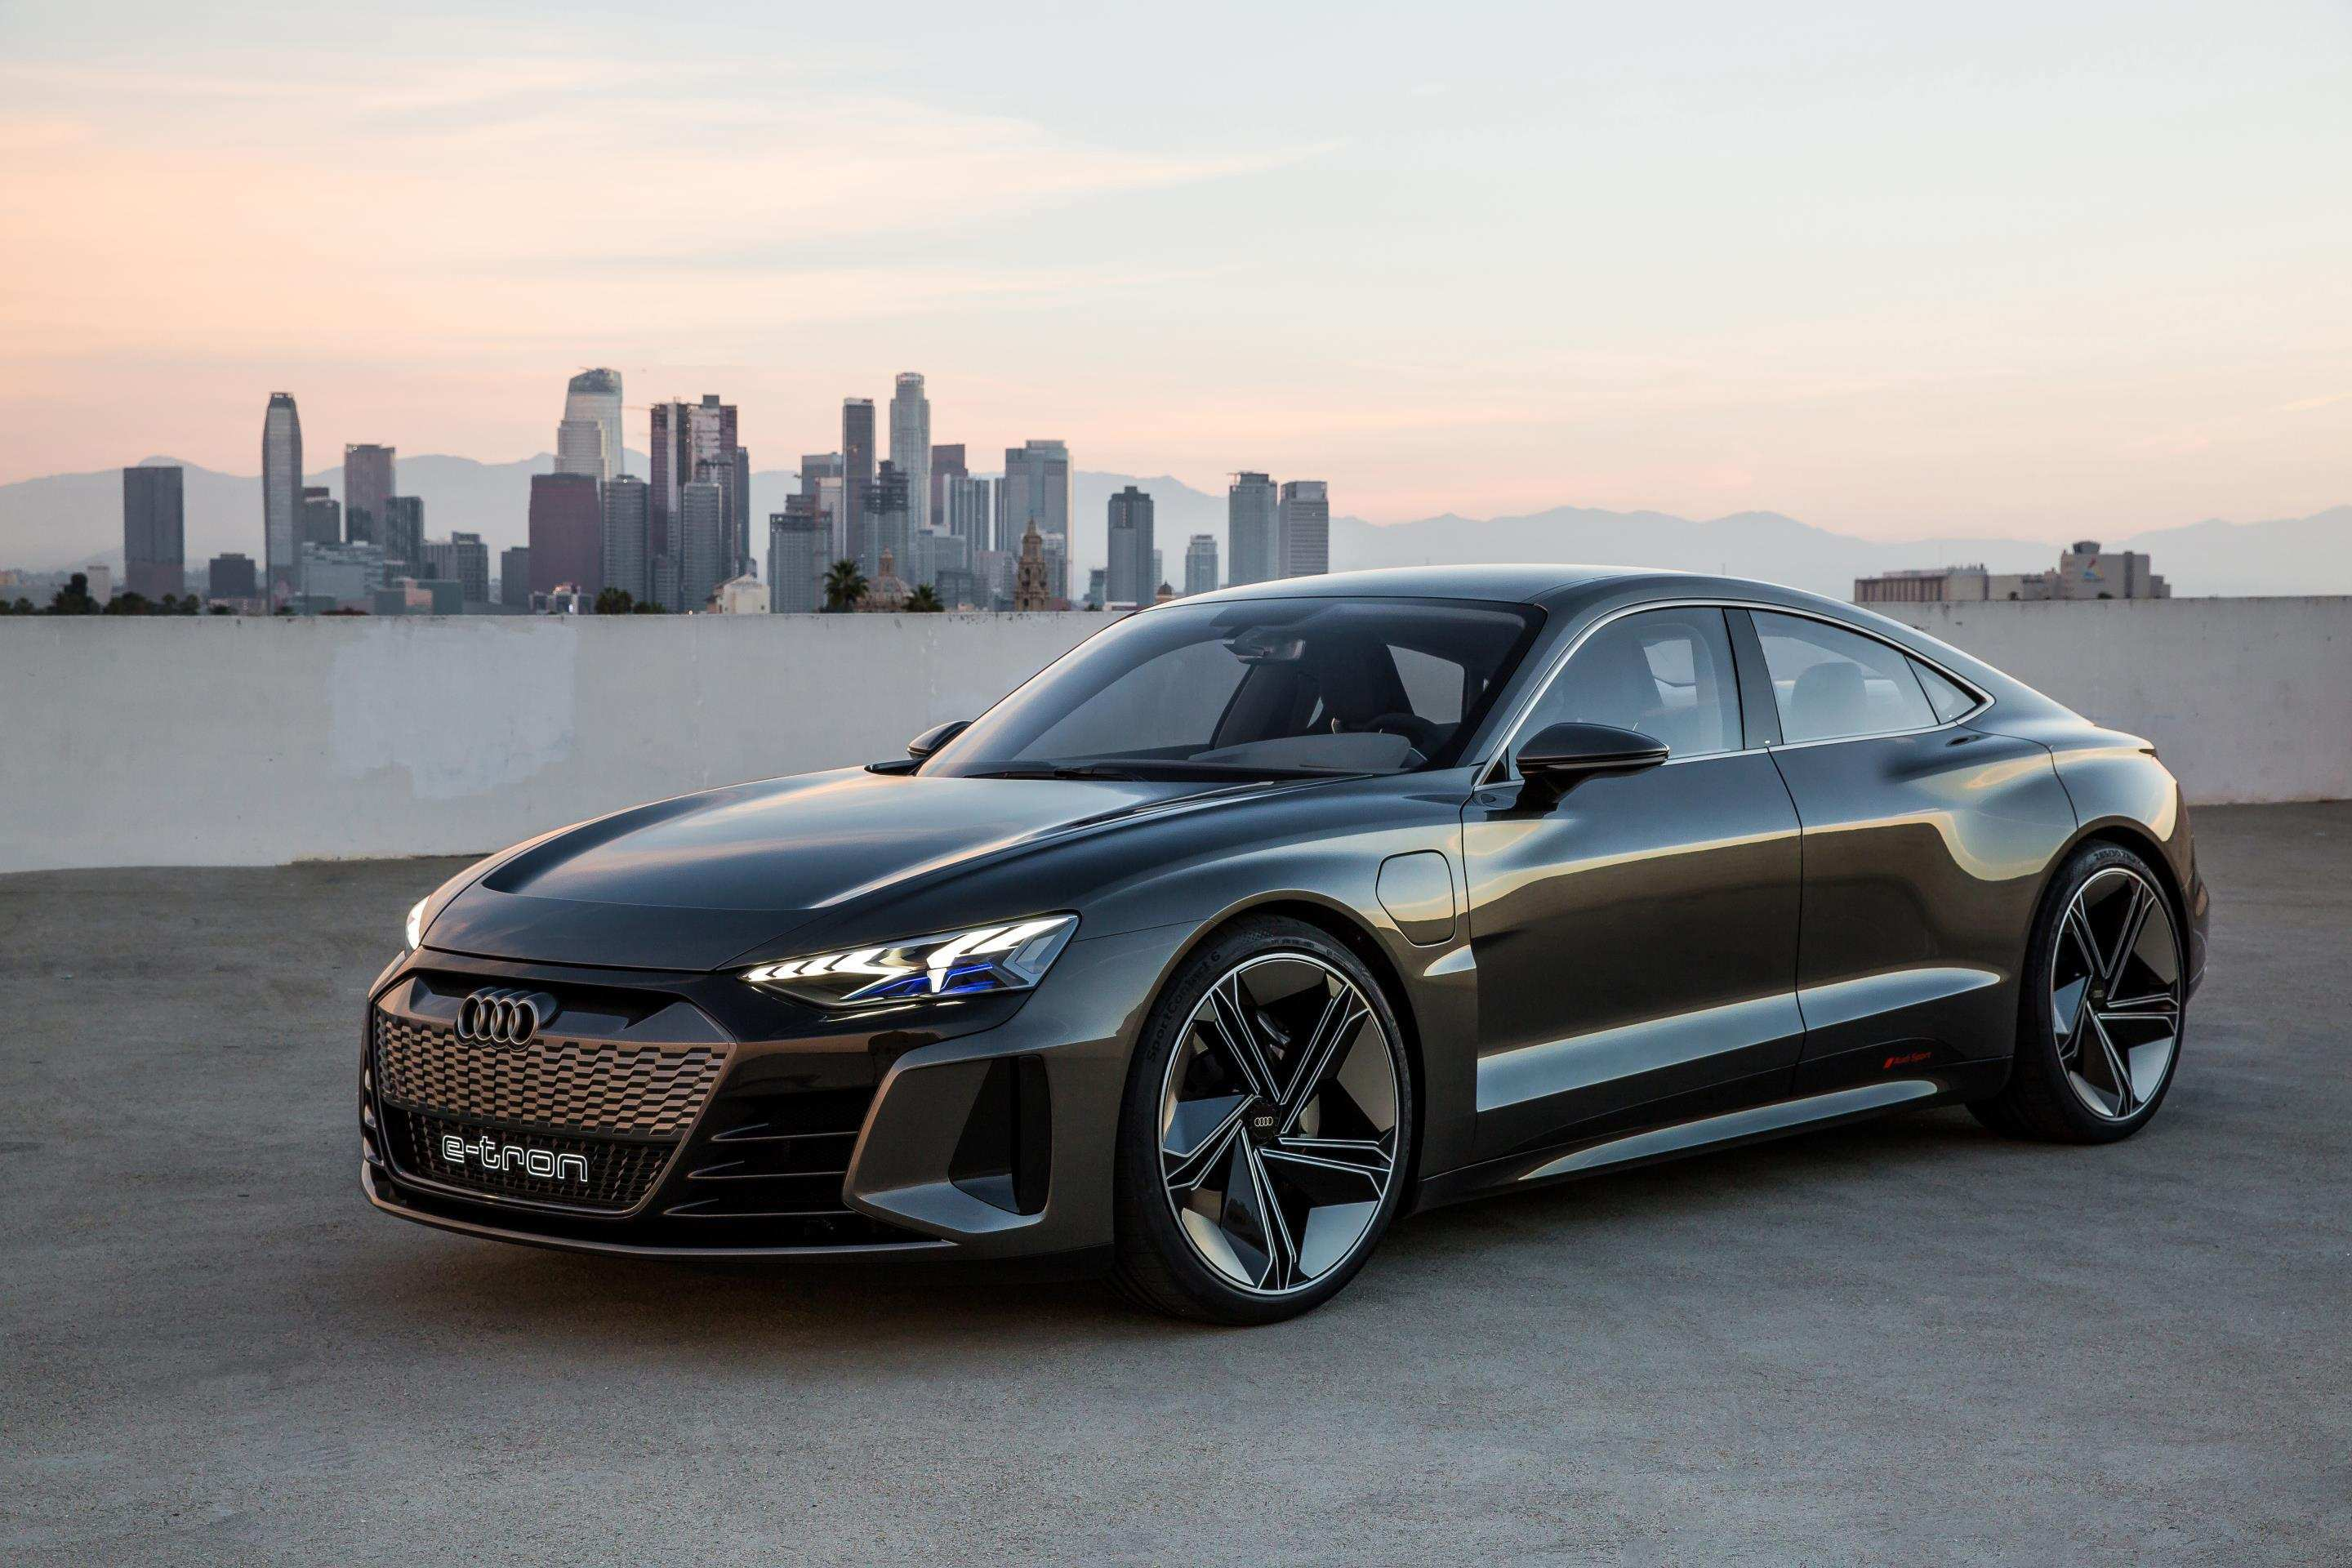 87 Great Audi G Tron 2020 Prices by Audi G Tron 2020